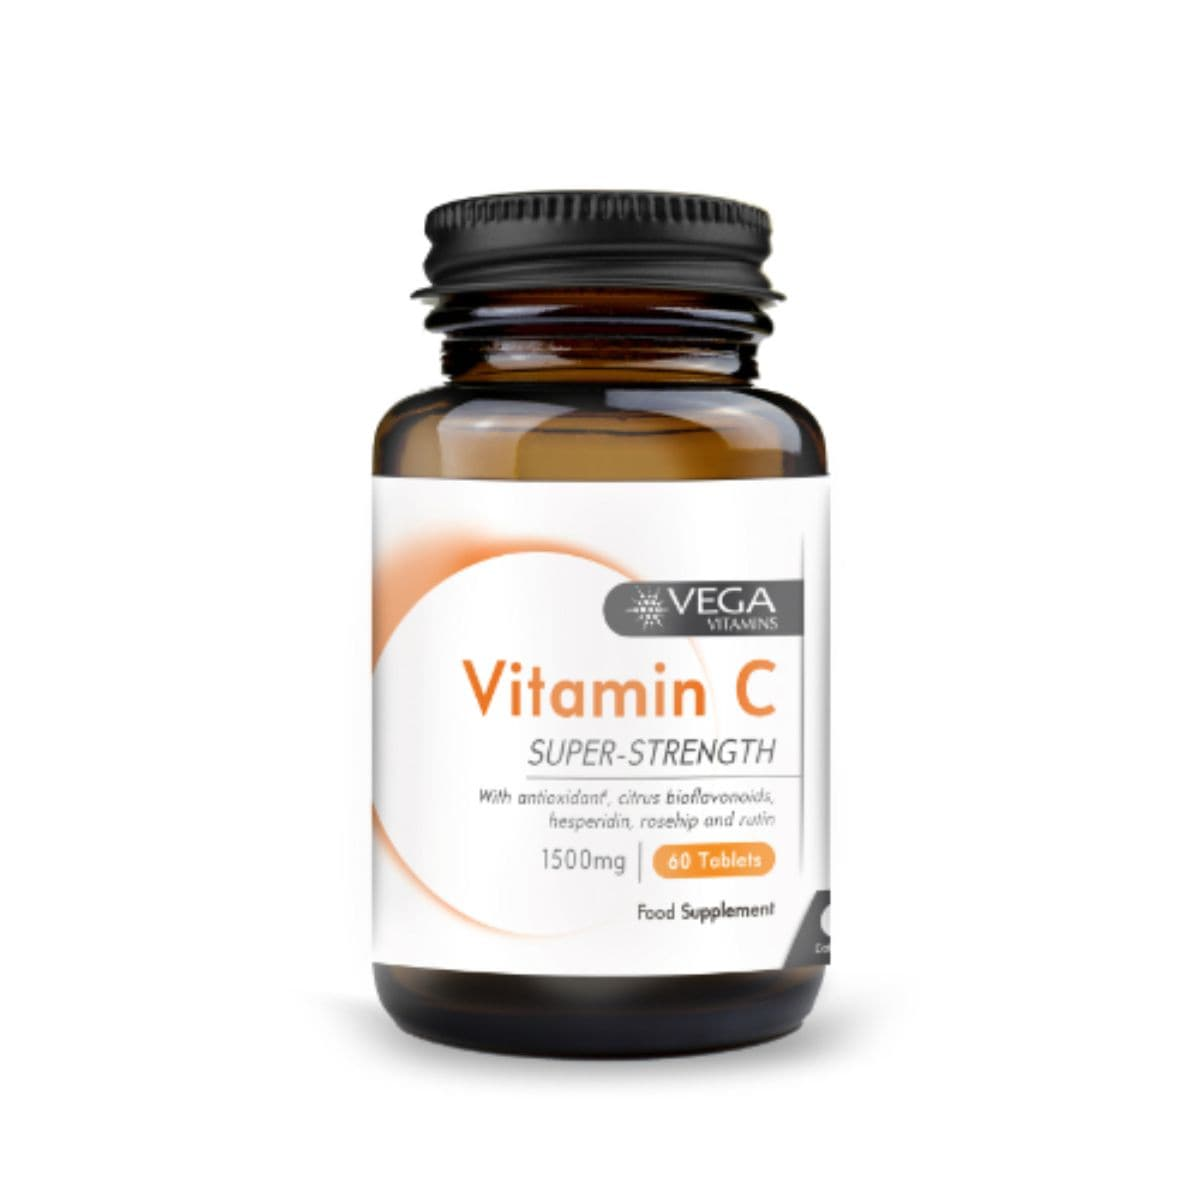 Vega Vitamin C 1500mg - Super Strength 60s - SoulBia